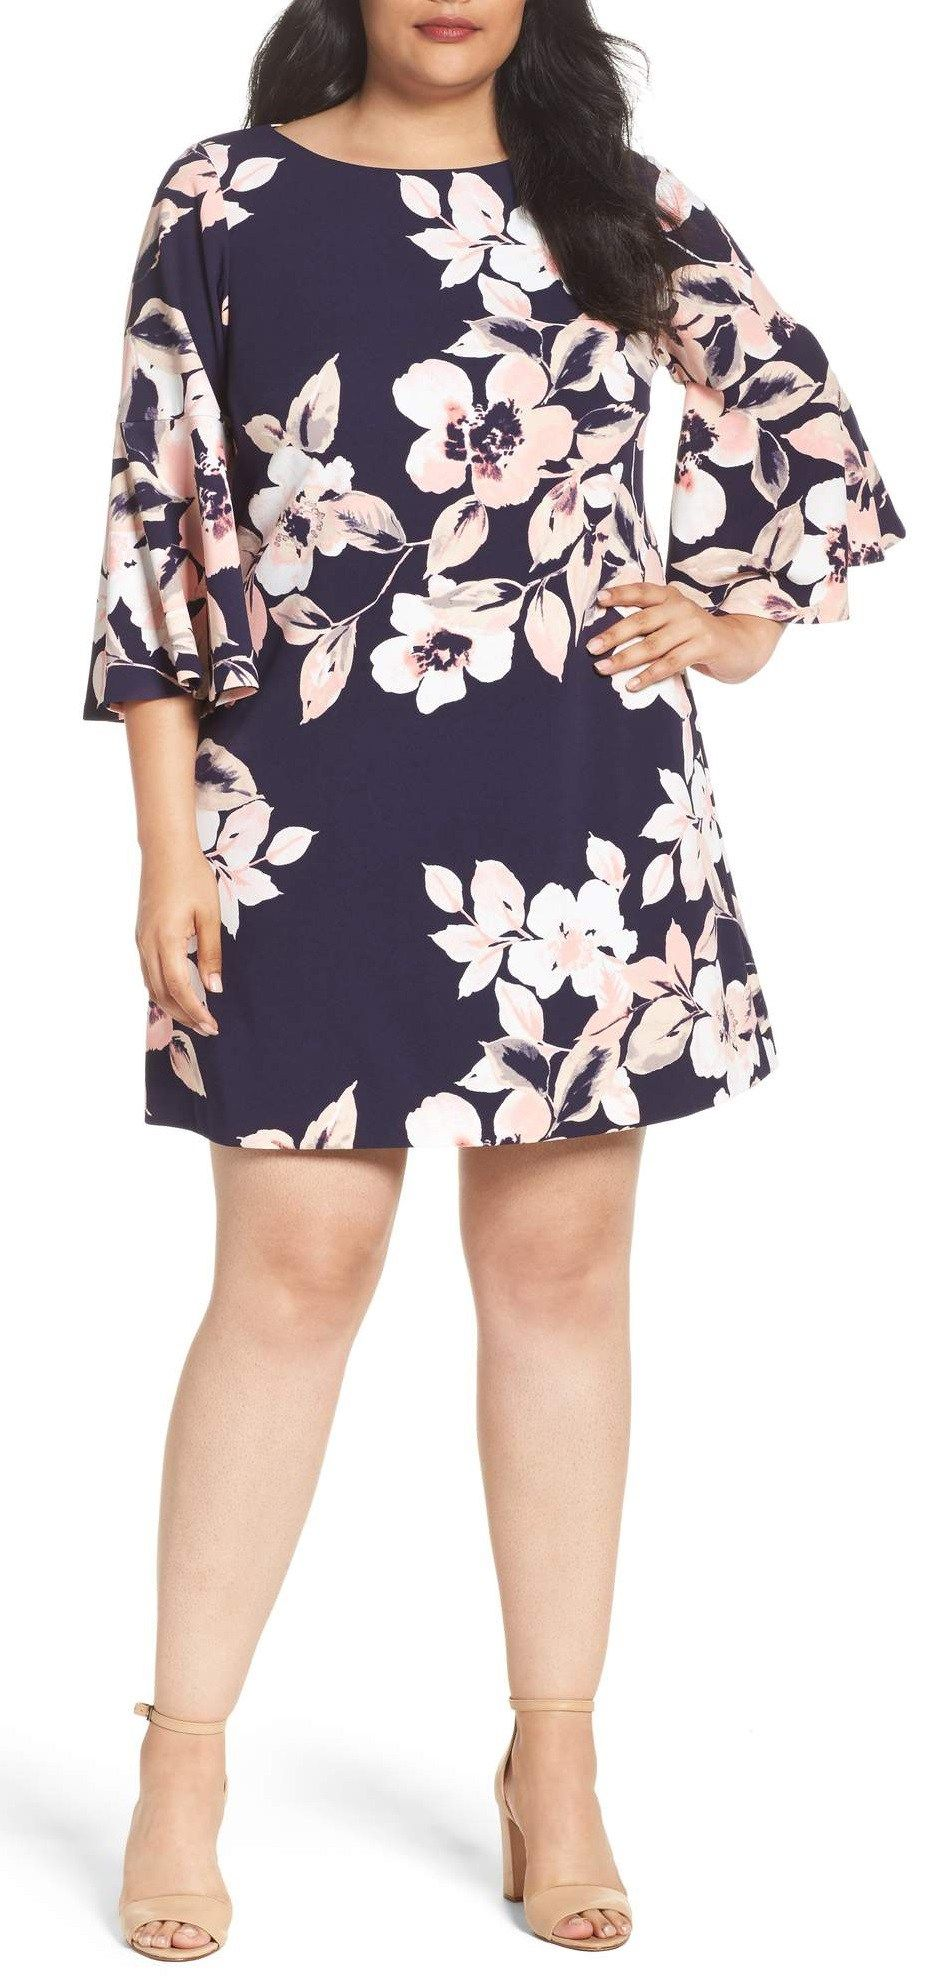 39 Plus Size Spring Wedding Guest Dresses With Sleeves Alexa Webb Bell Sleeve Shift Dress Plus Size Wedding Guest Dresses Curvy Dress